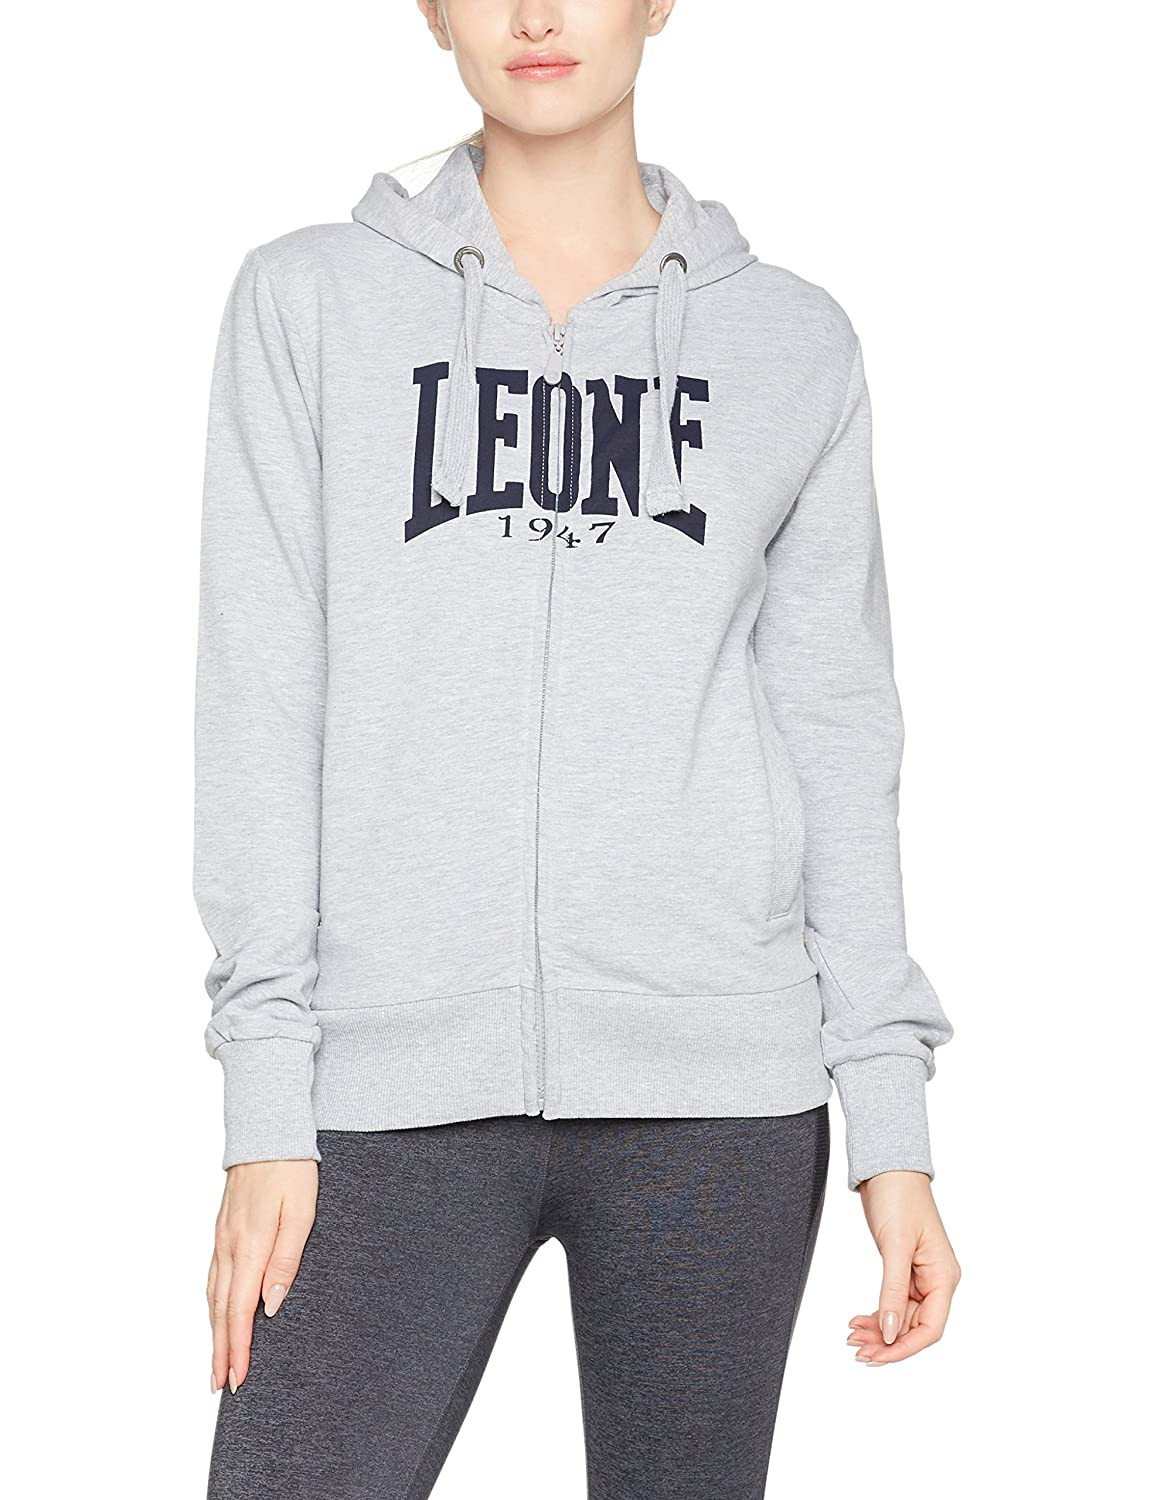 LEONE 1947 APPAREL Sport Fight Activewear Lw681, Felpa con Cappuccio E Zip Donna Banana Blue